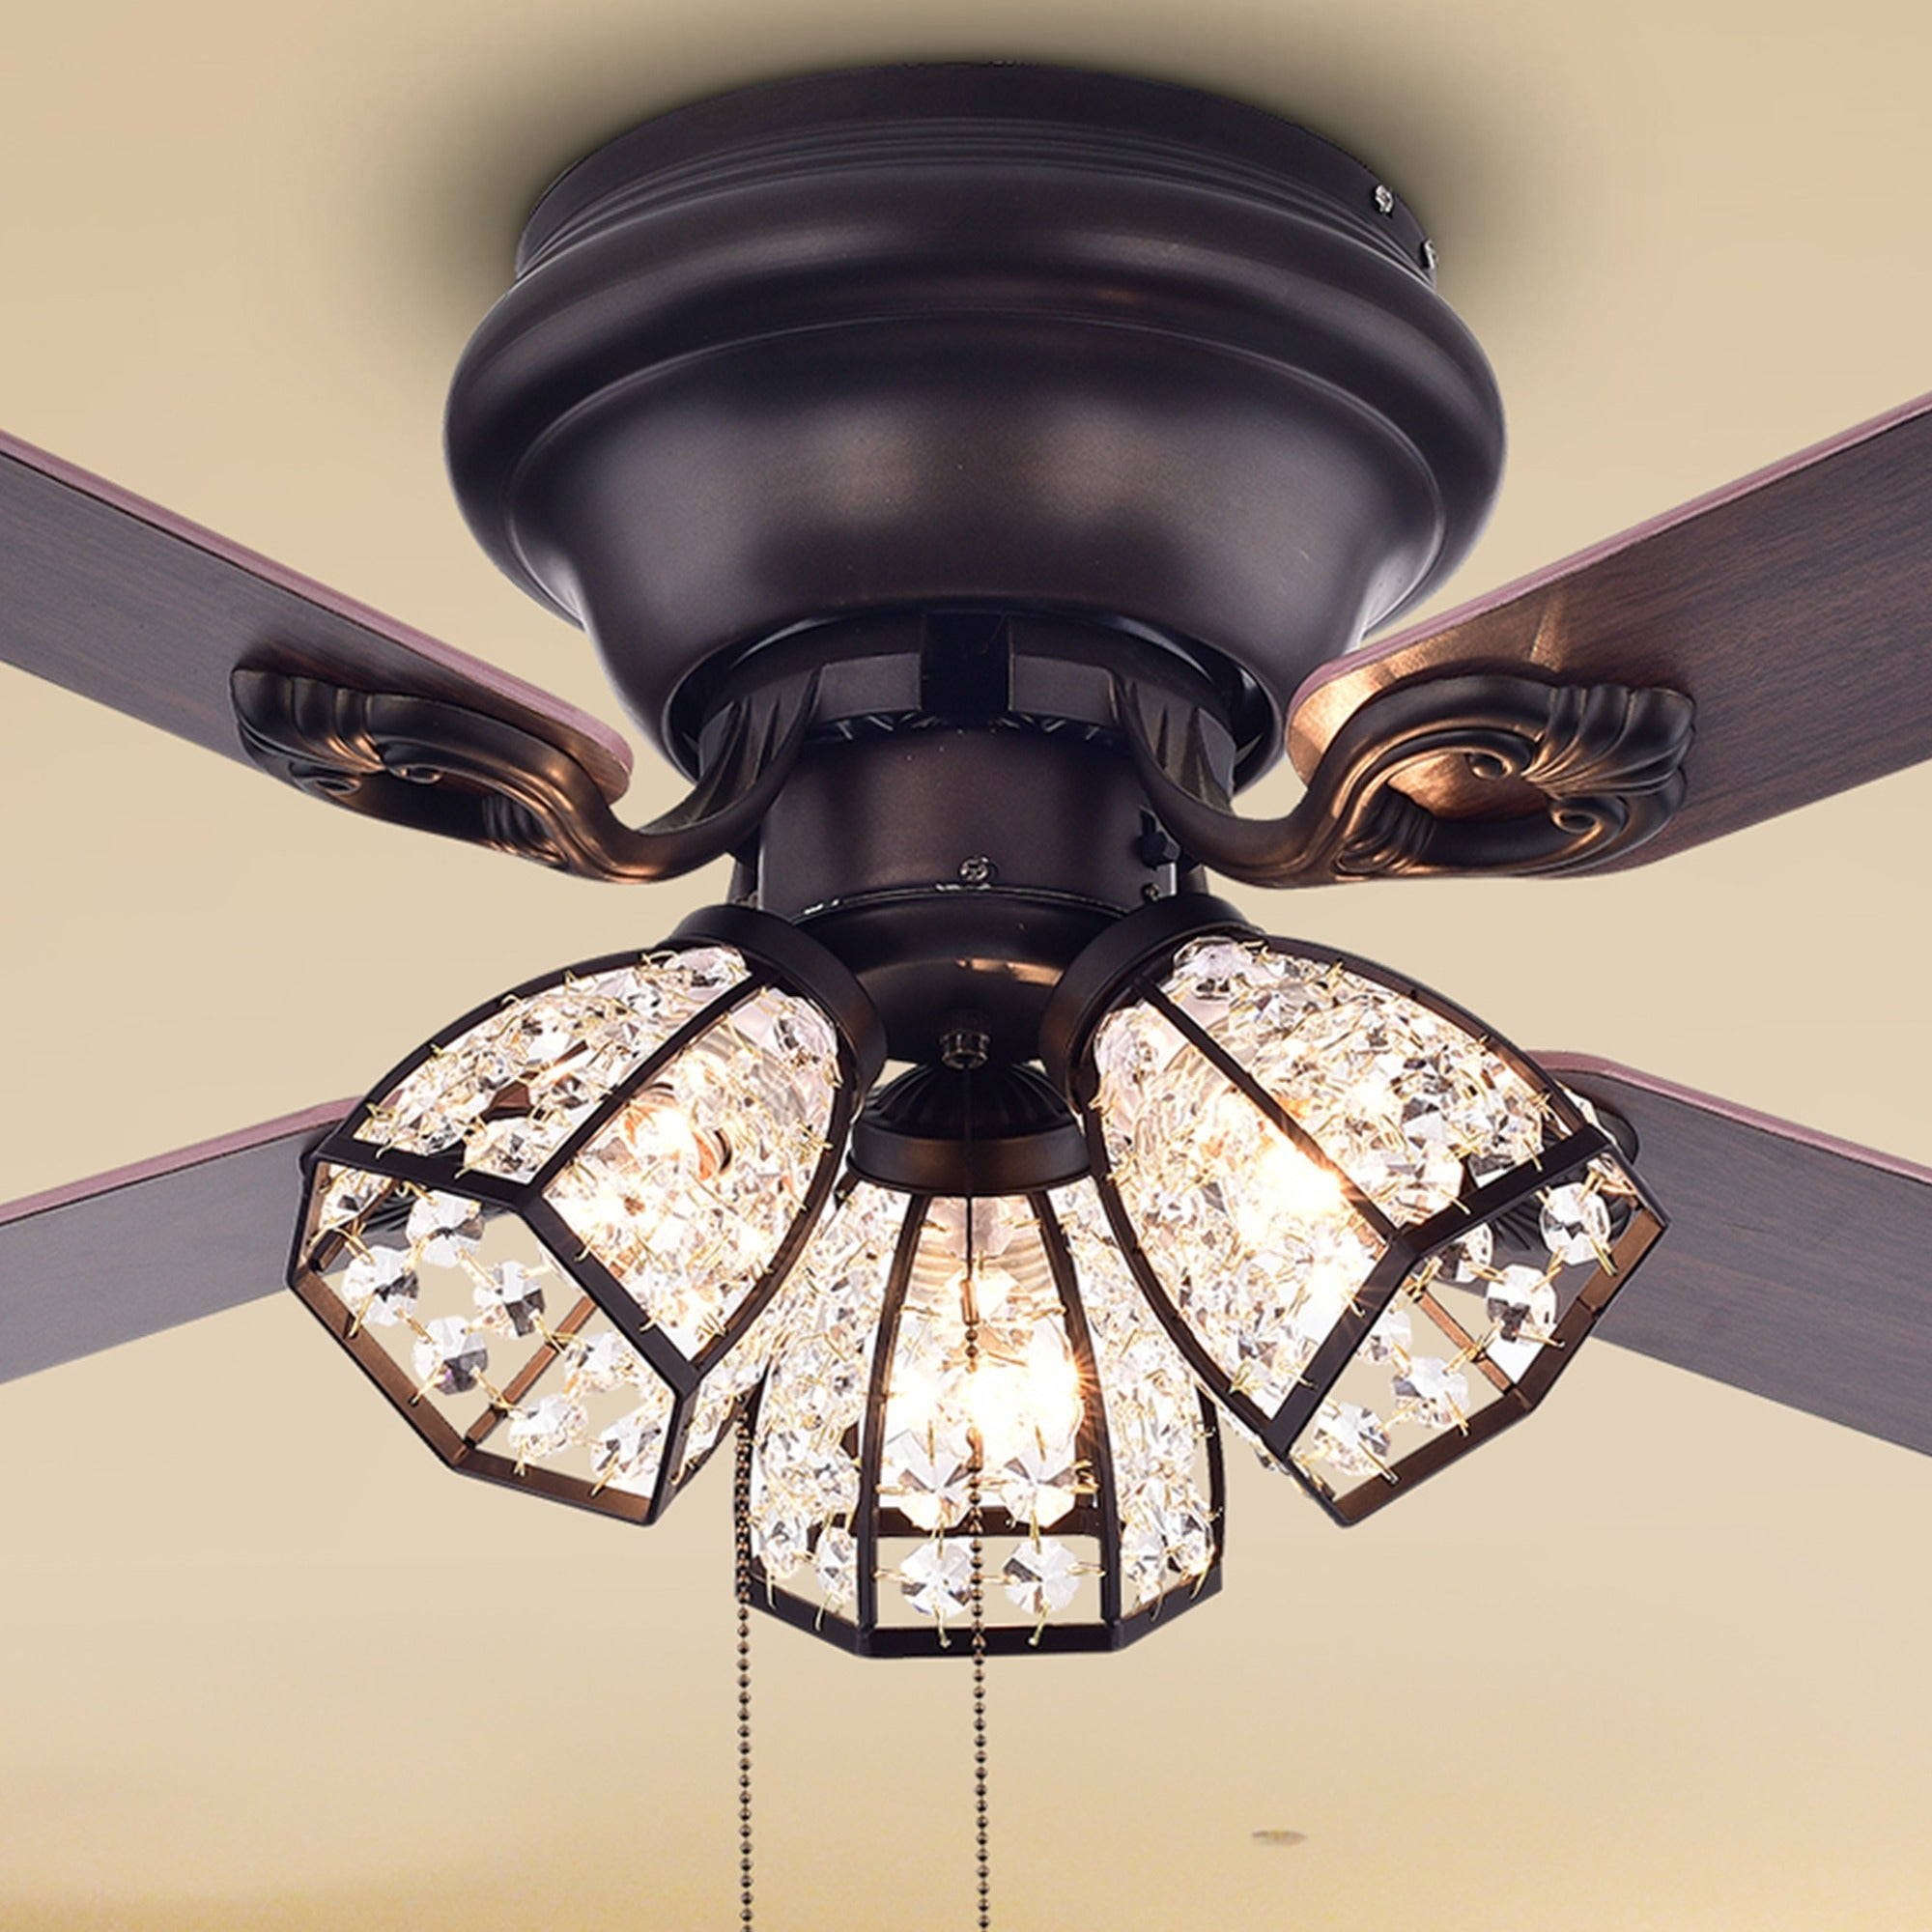 Ceiling Fans Find Great Accessories Deals